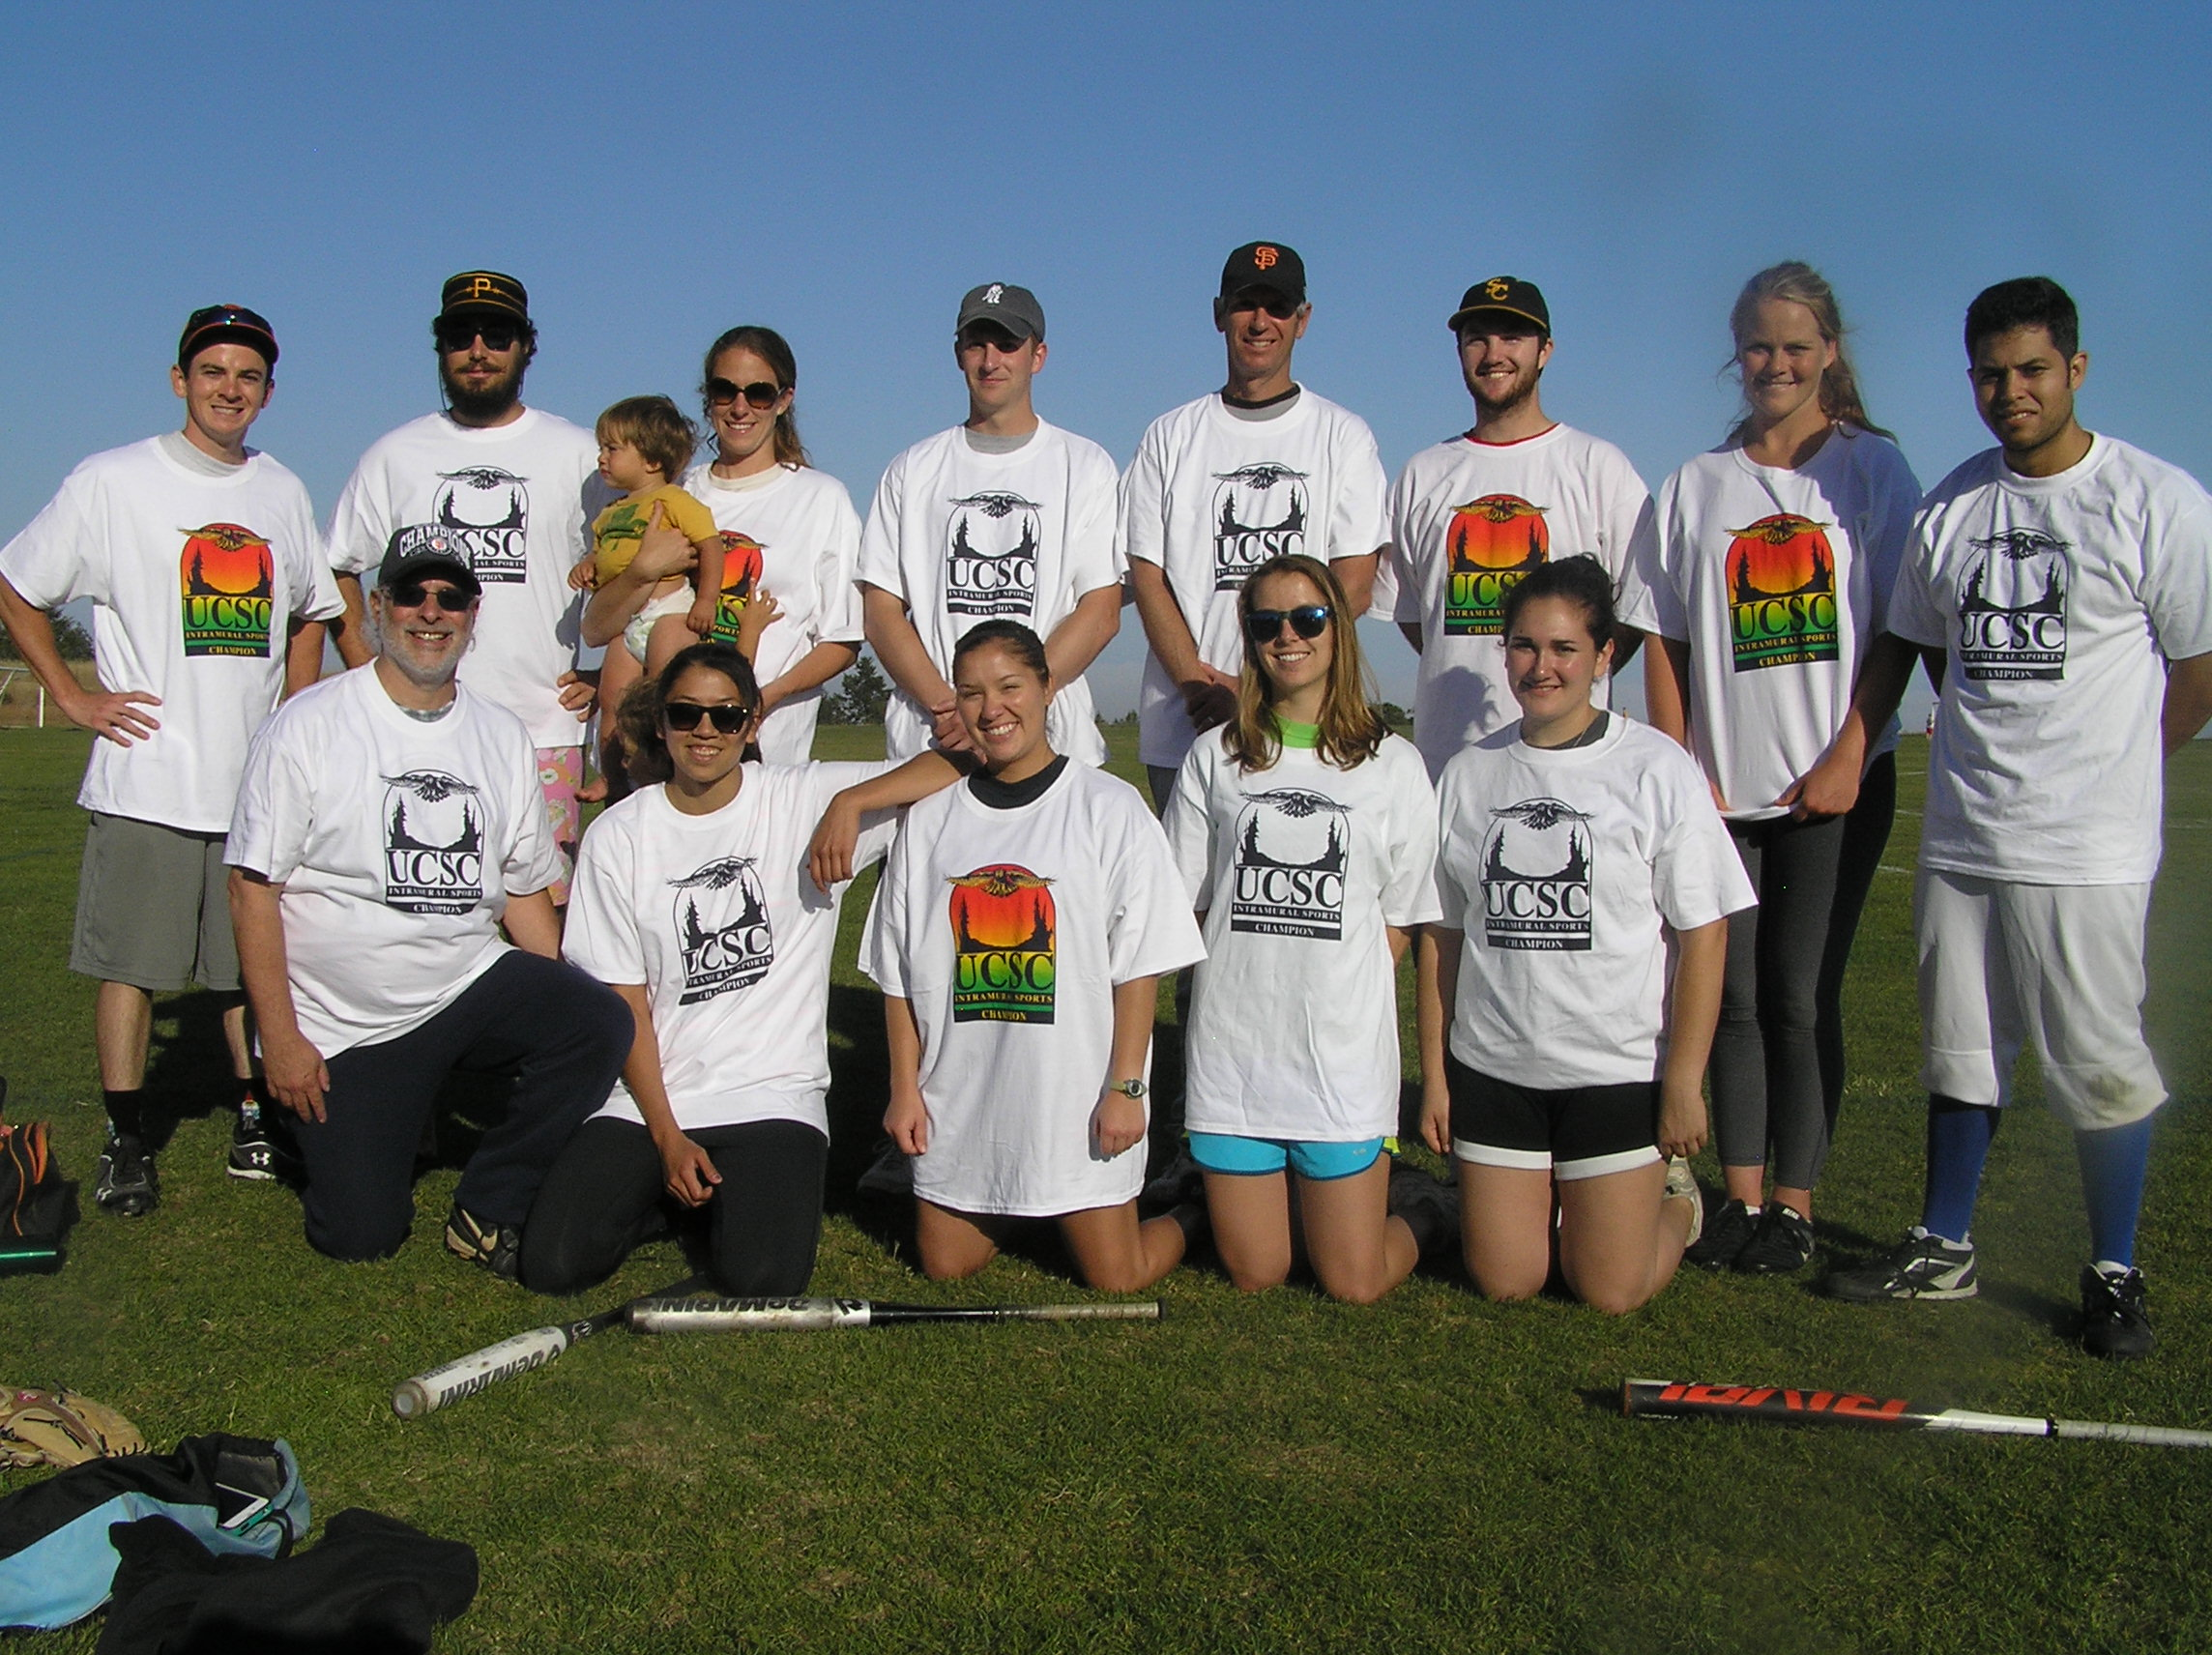 Spring 2013 Coed Softball Team